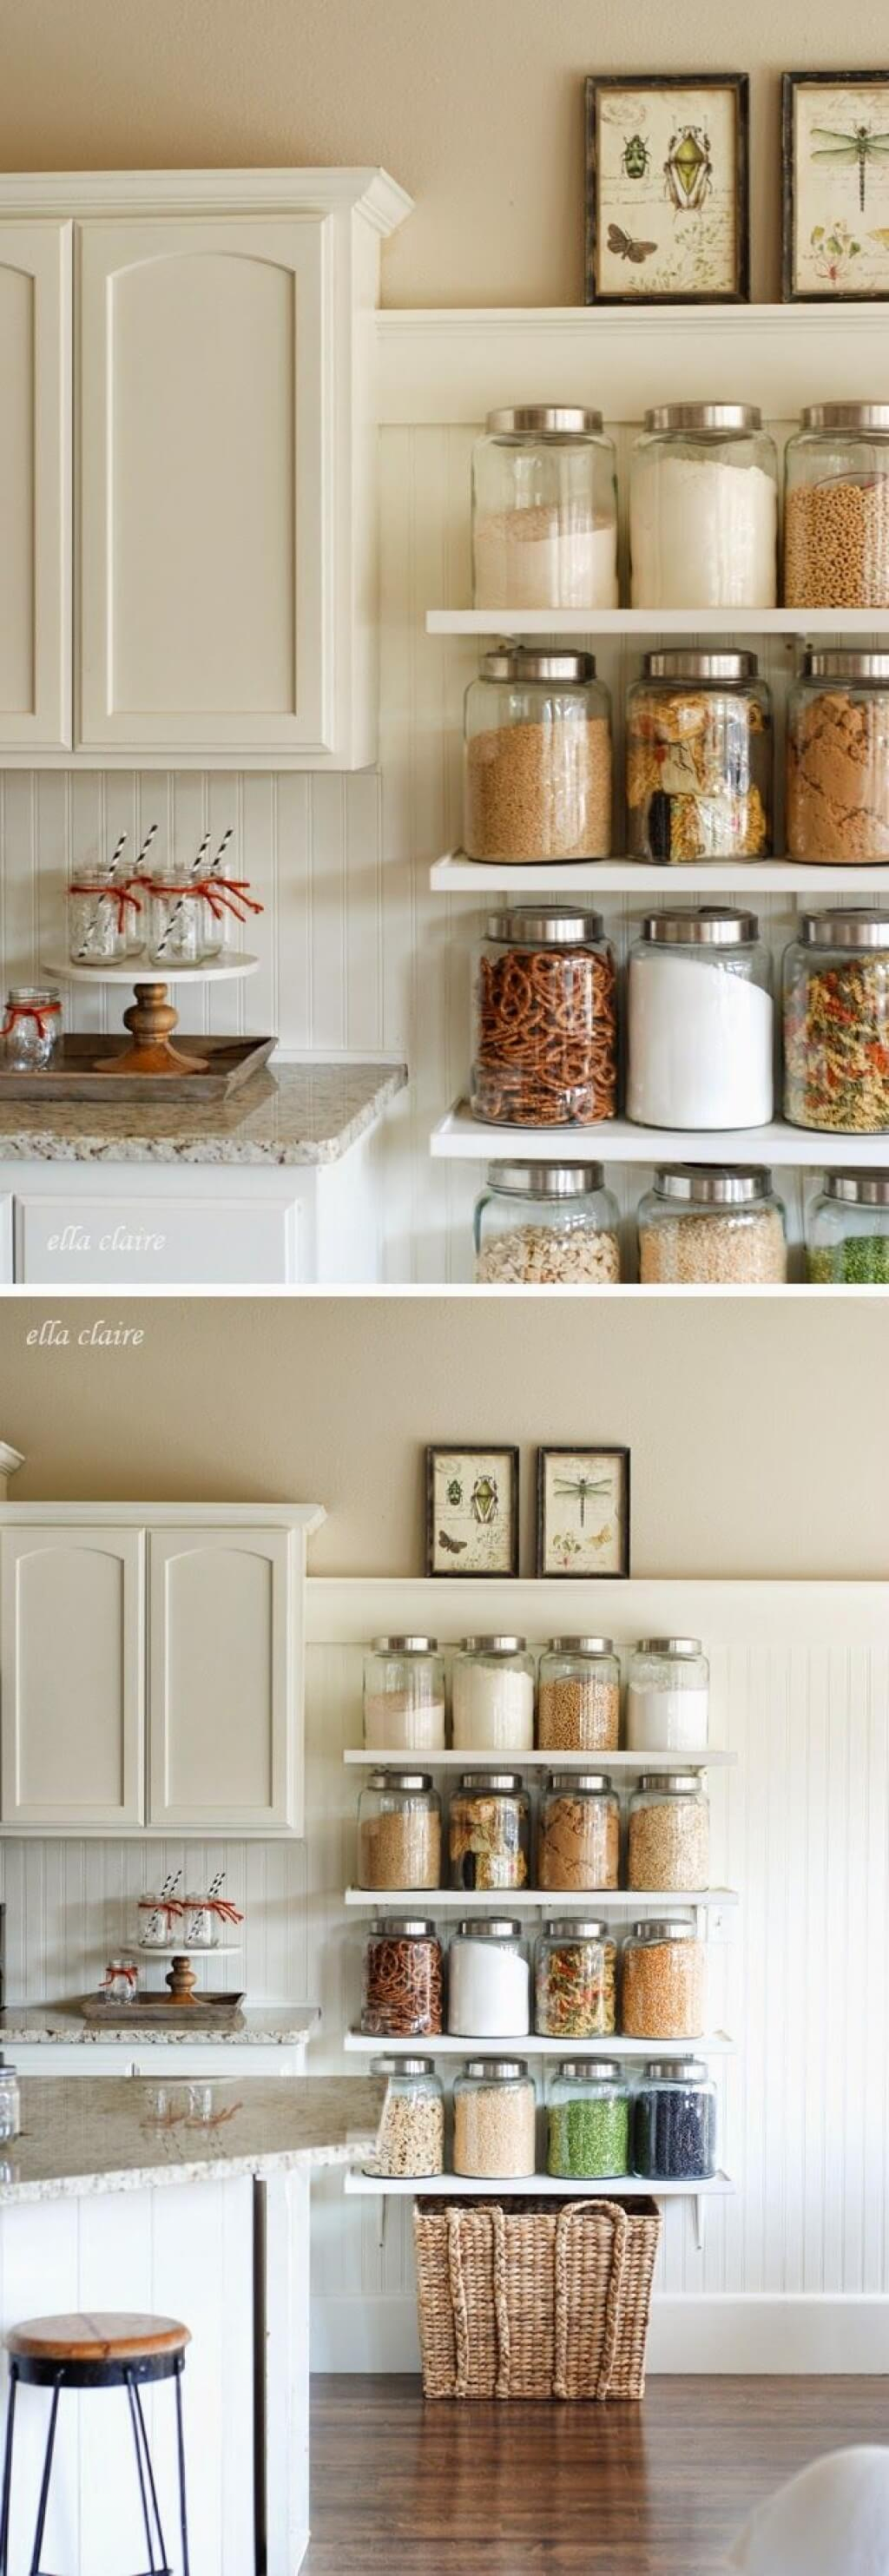 Shelves for Cooking Essentials and Snacks